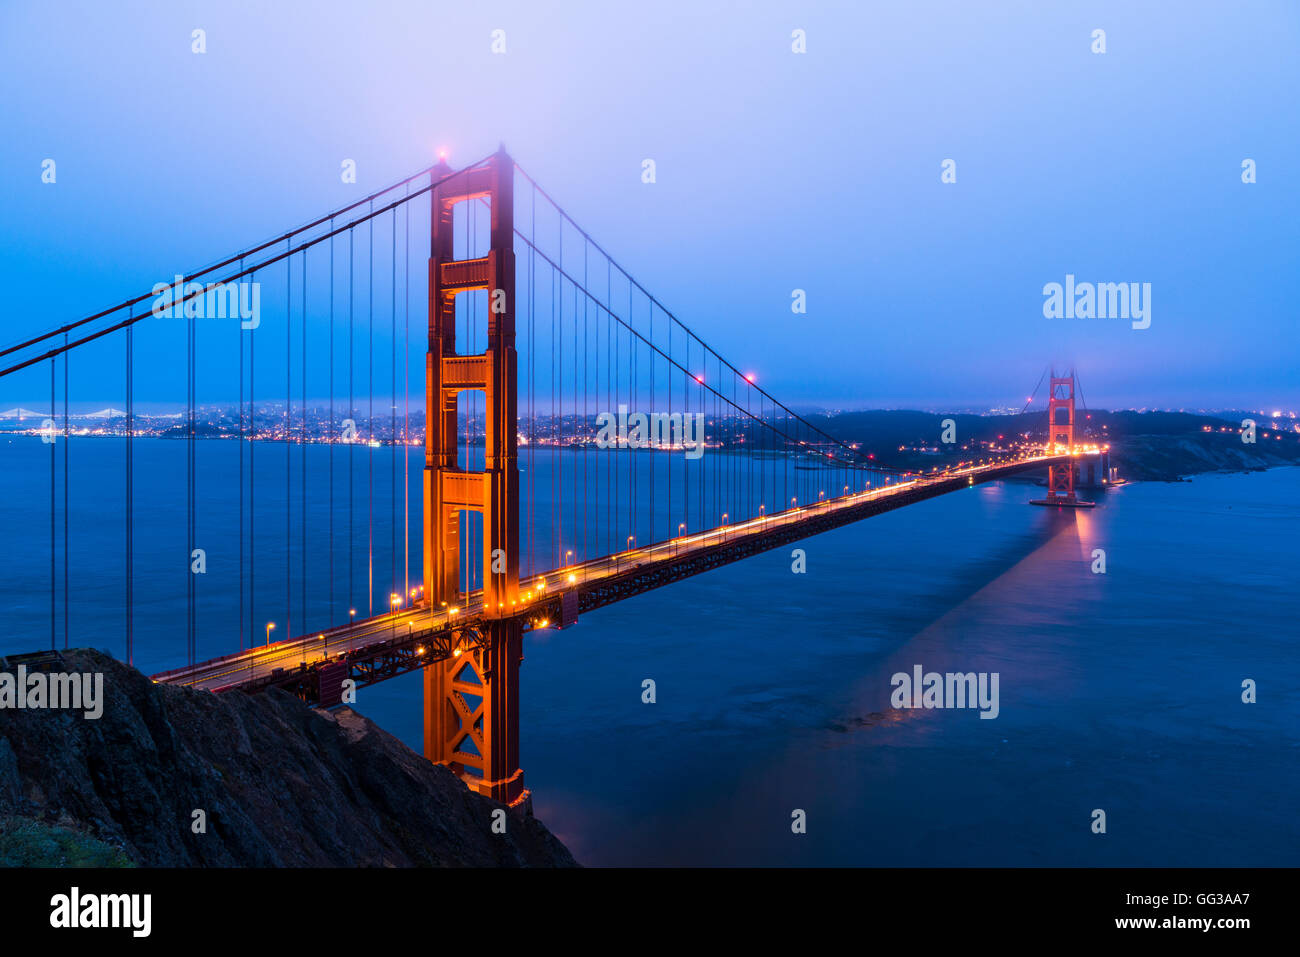 View from the Golden Gate Bridge, San Francisco, USA - Stock Image